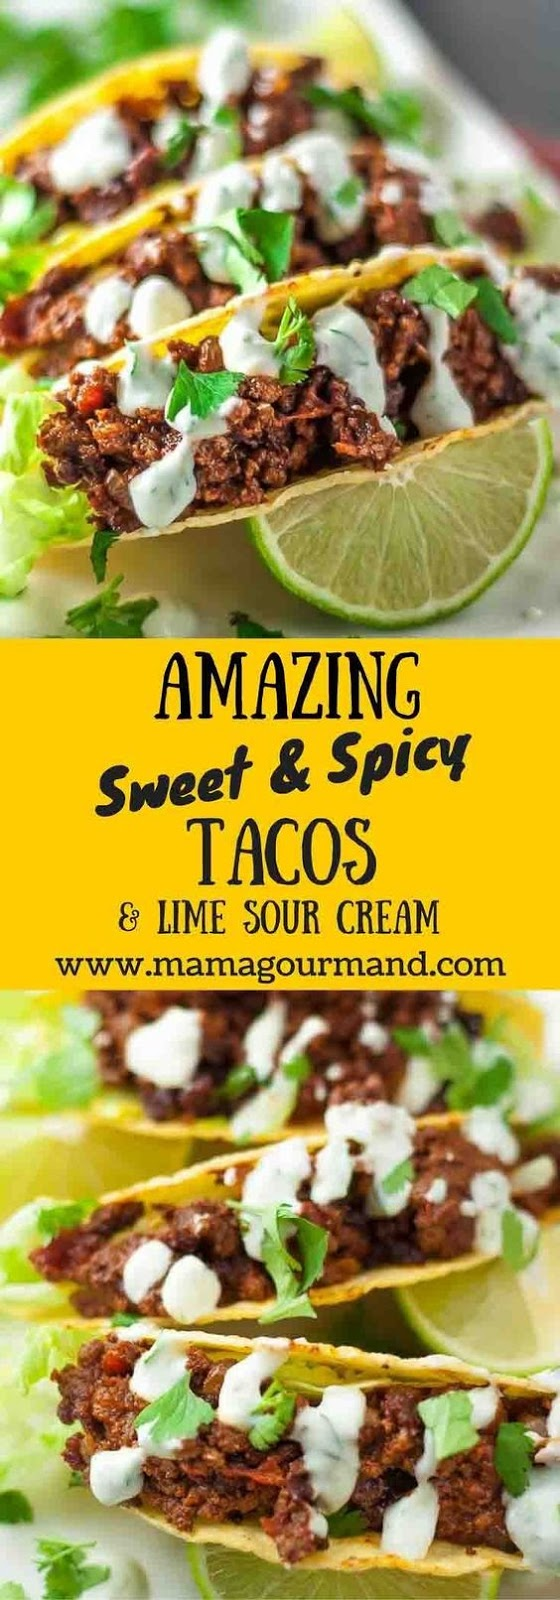 SWEET AND SPICY TACOS WITH LIME SOUR CREAM